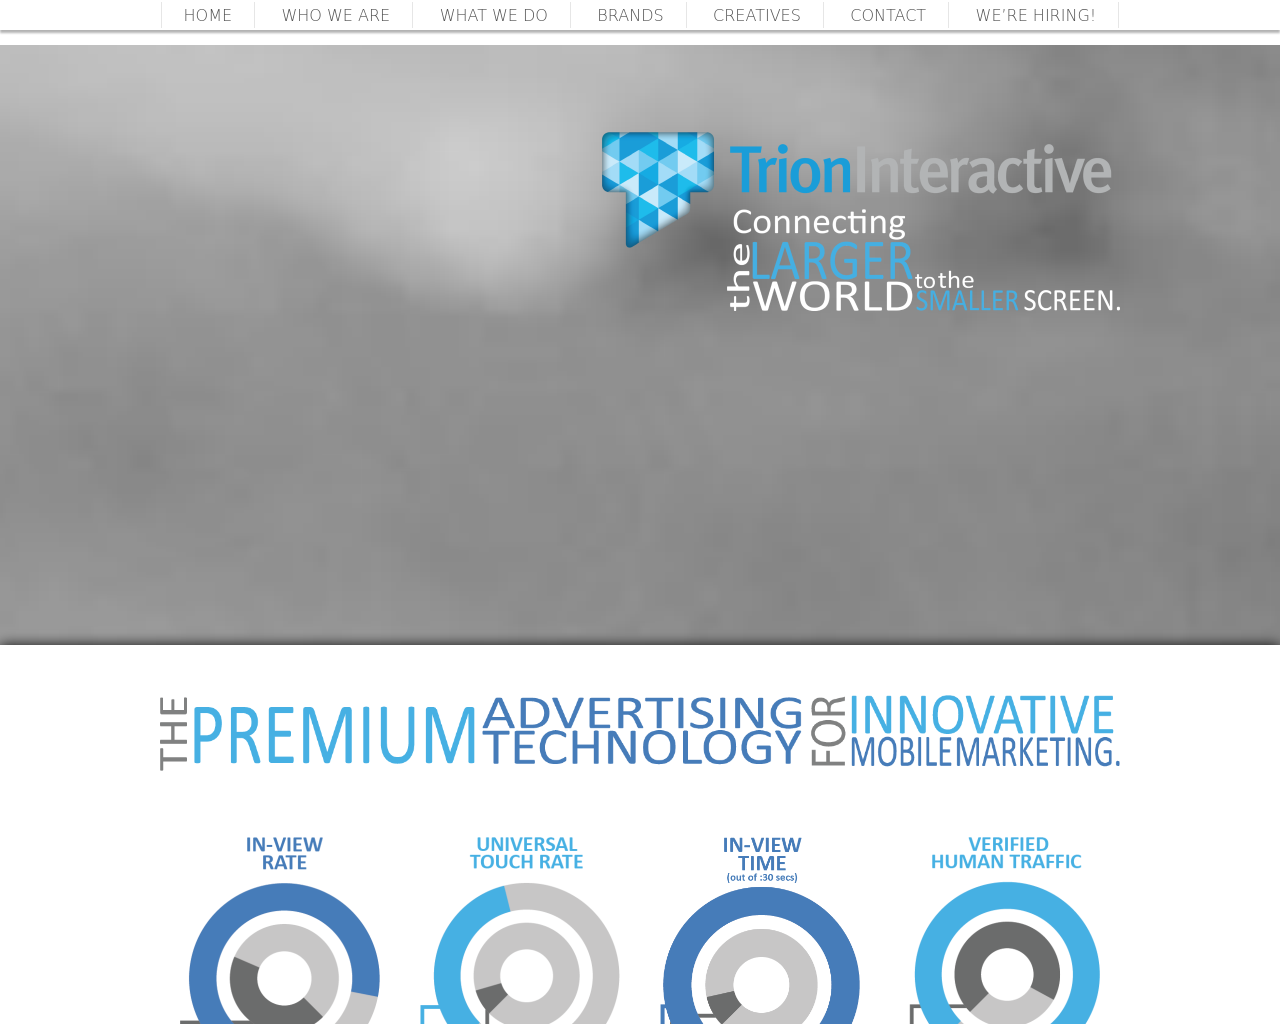 Trion-Interactive-Advertising-Reviews-Pricing